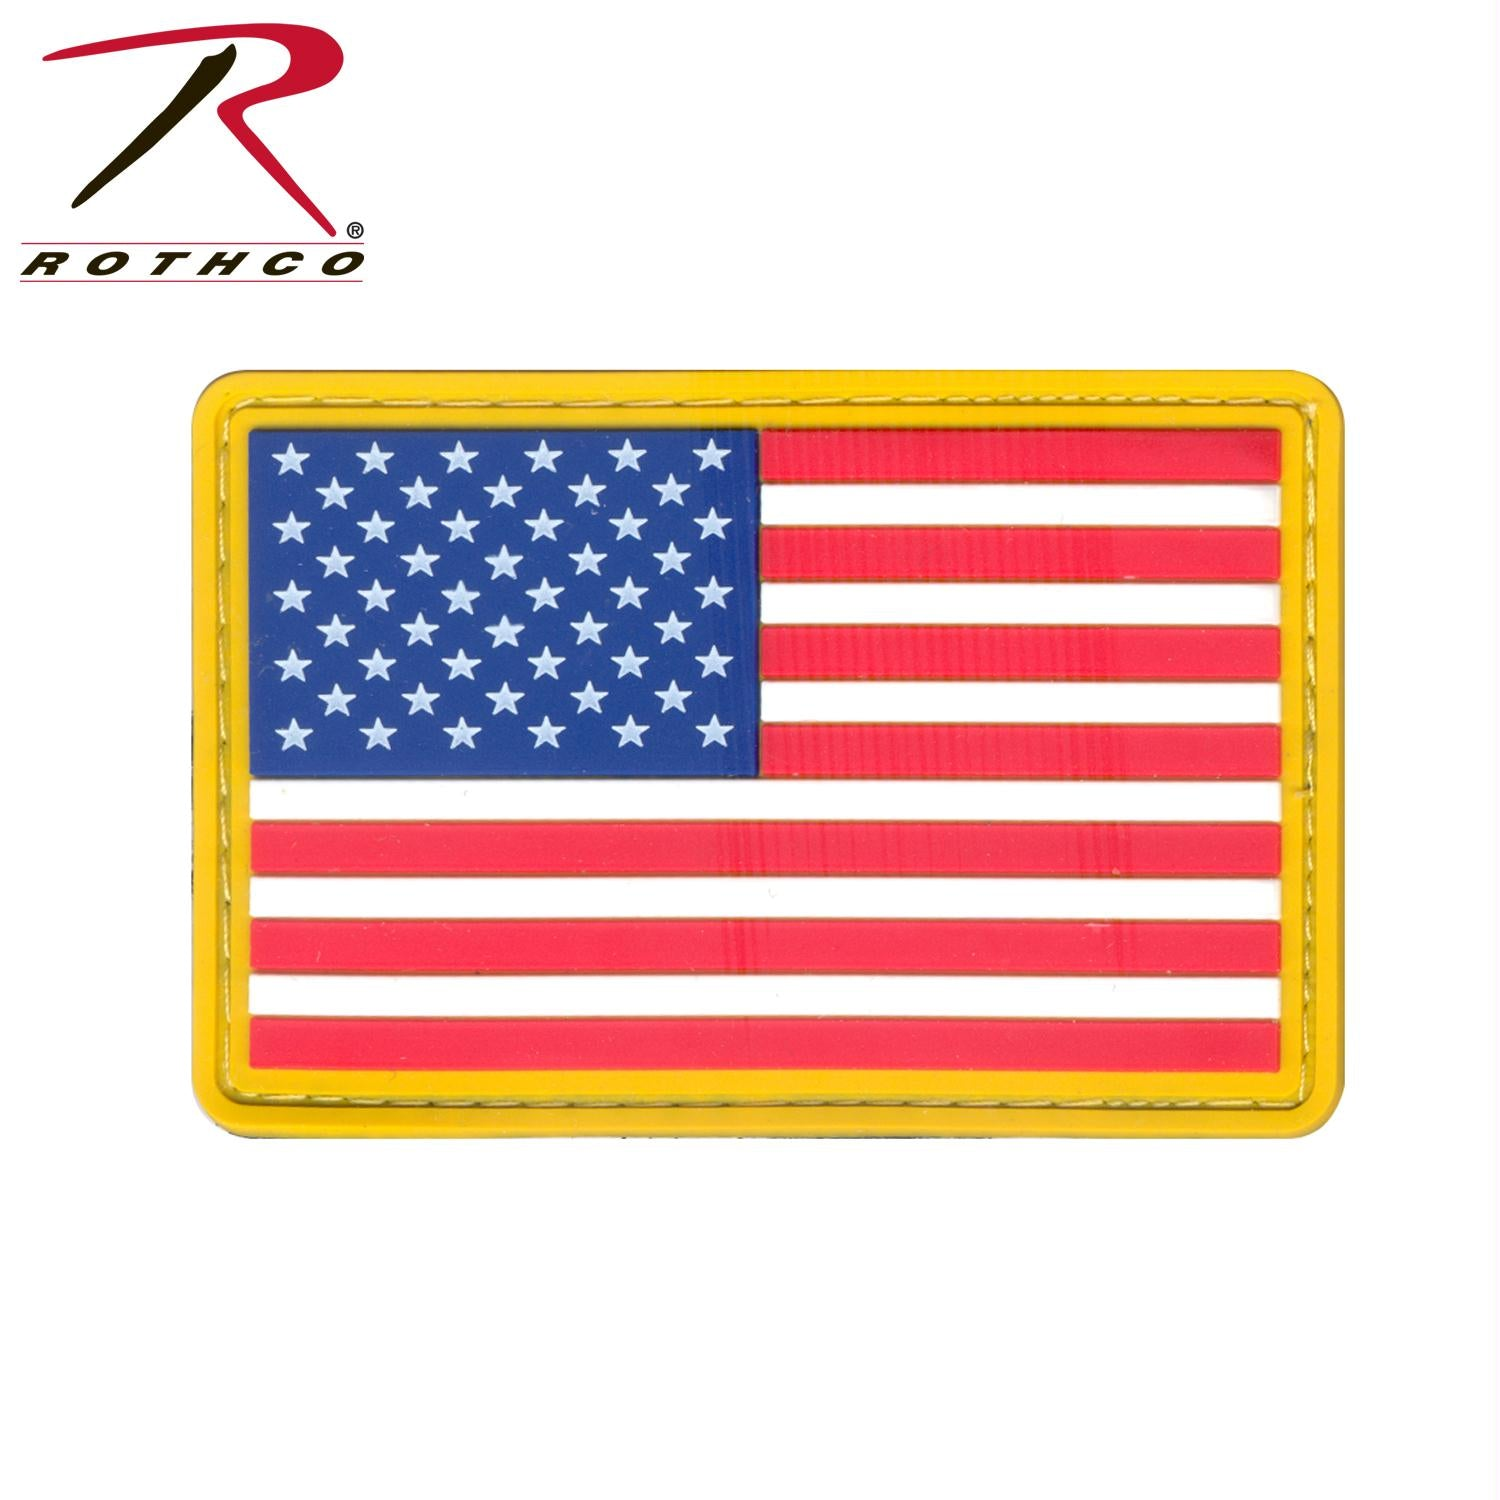 Rothco PVC US Flag Patch - One Size